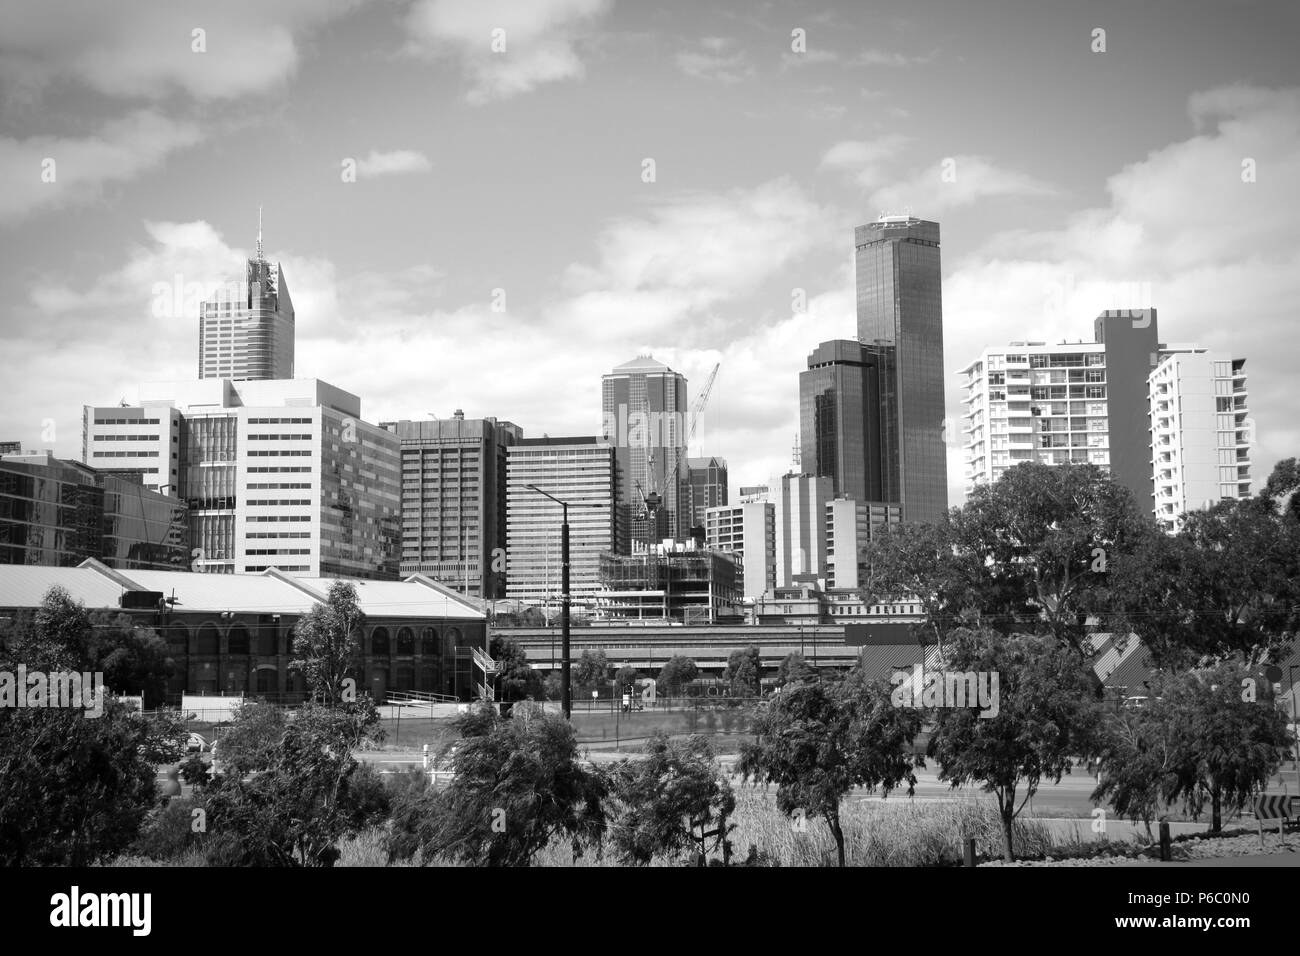 Melbourne skyline as seen from the Docklands. Beautiful modern city in Australia. Black and white tone - retro monochrome color style. - Stock Image